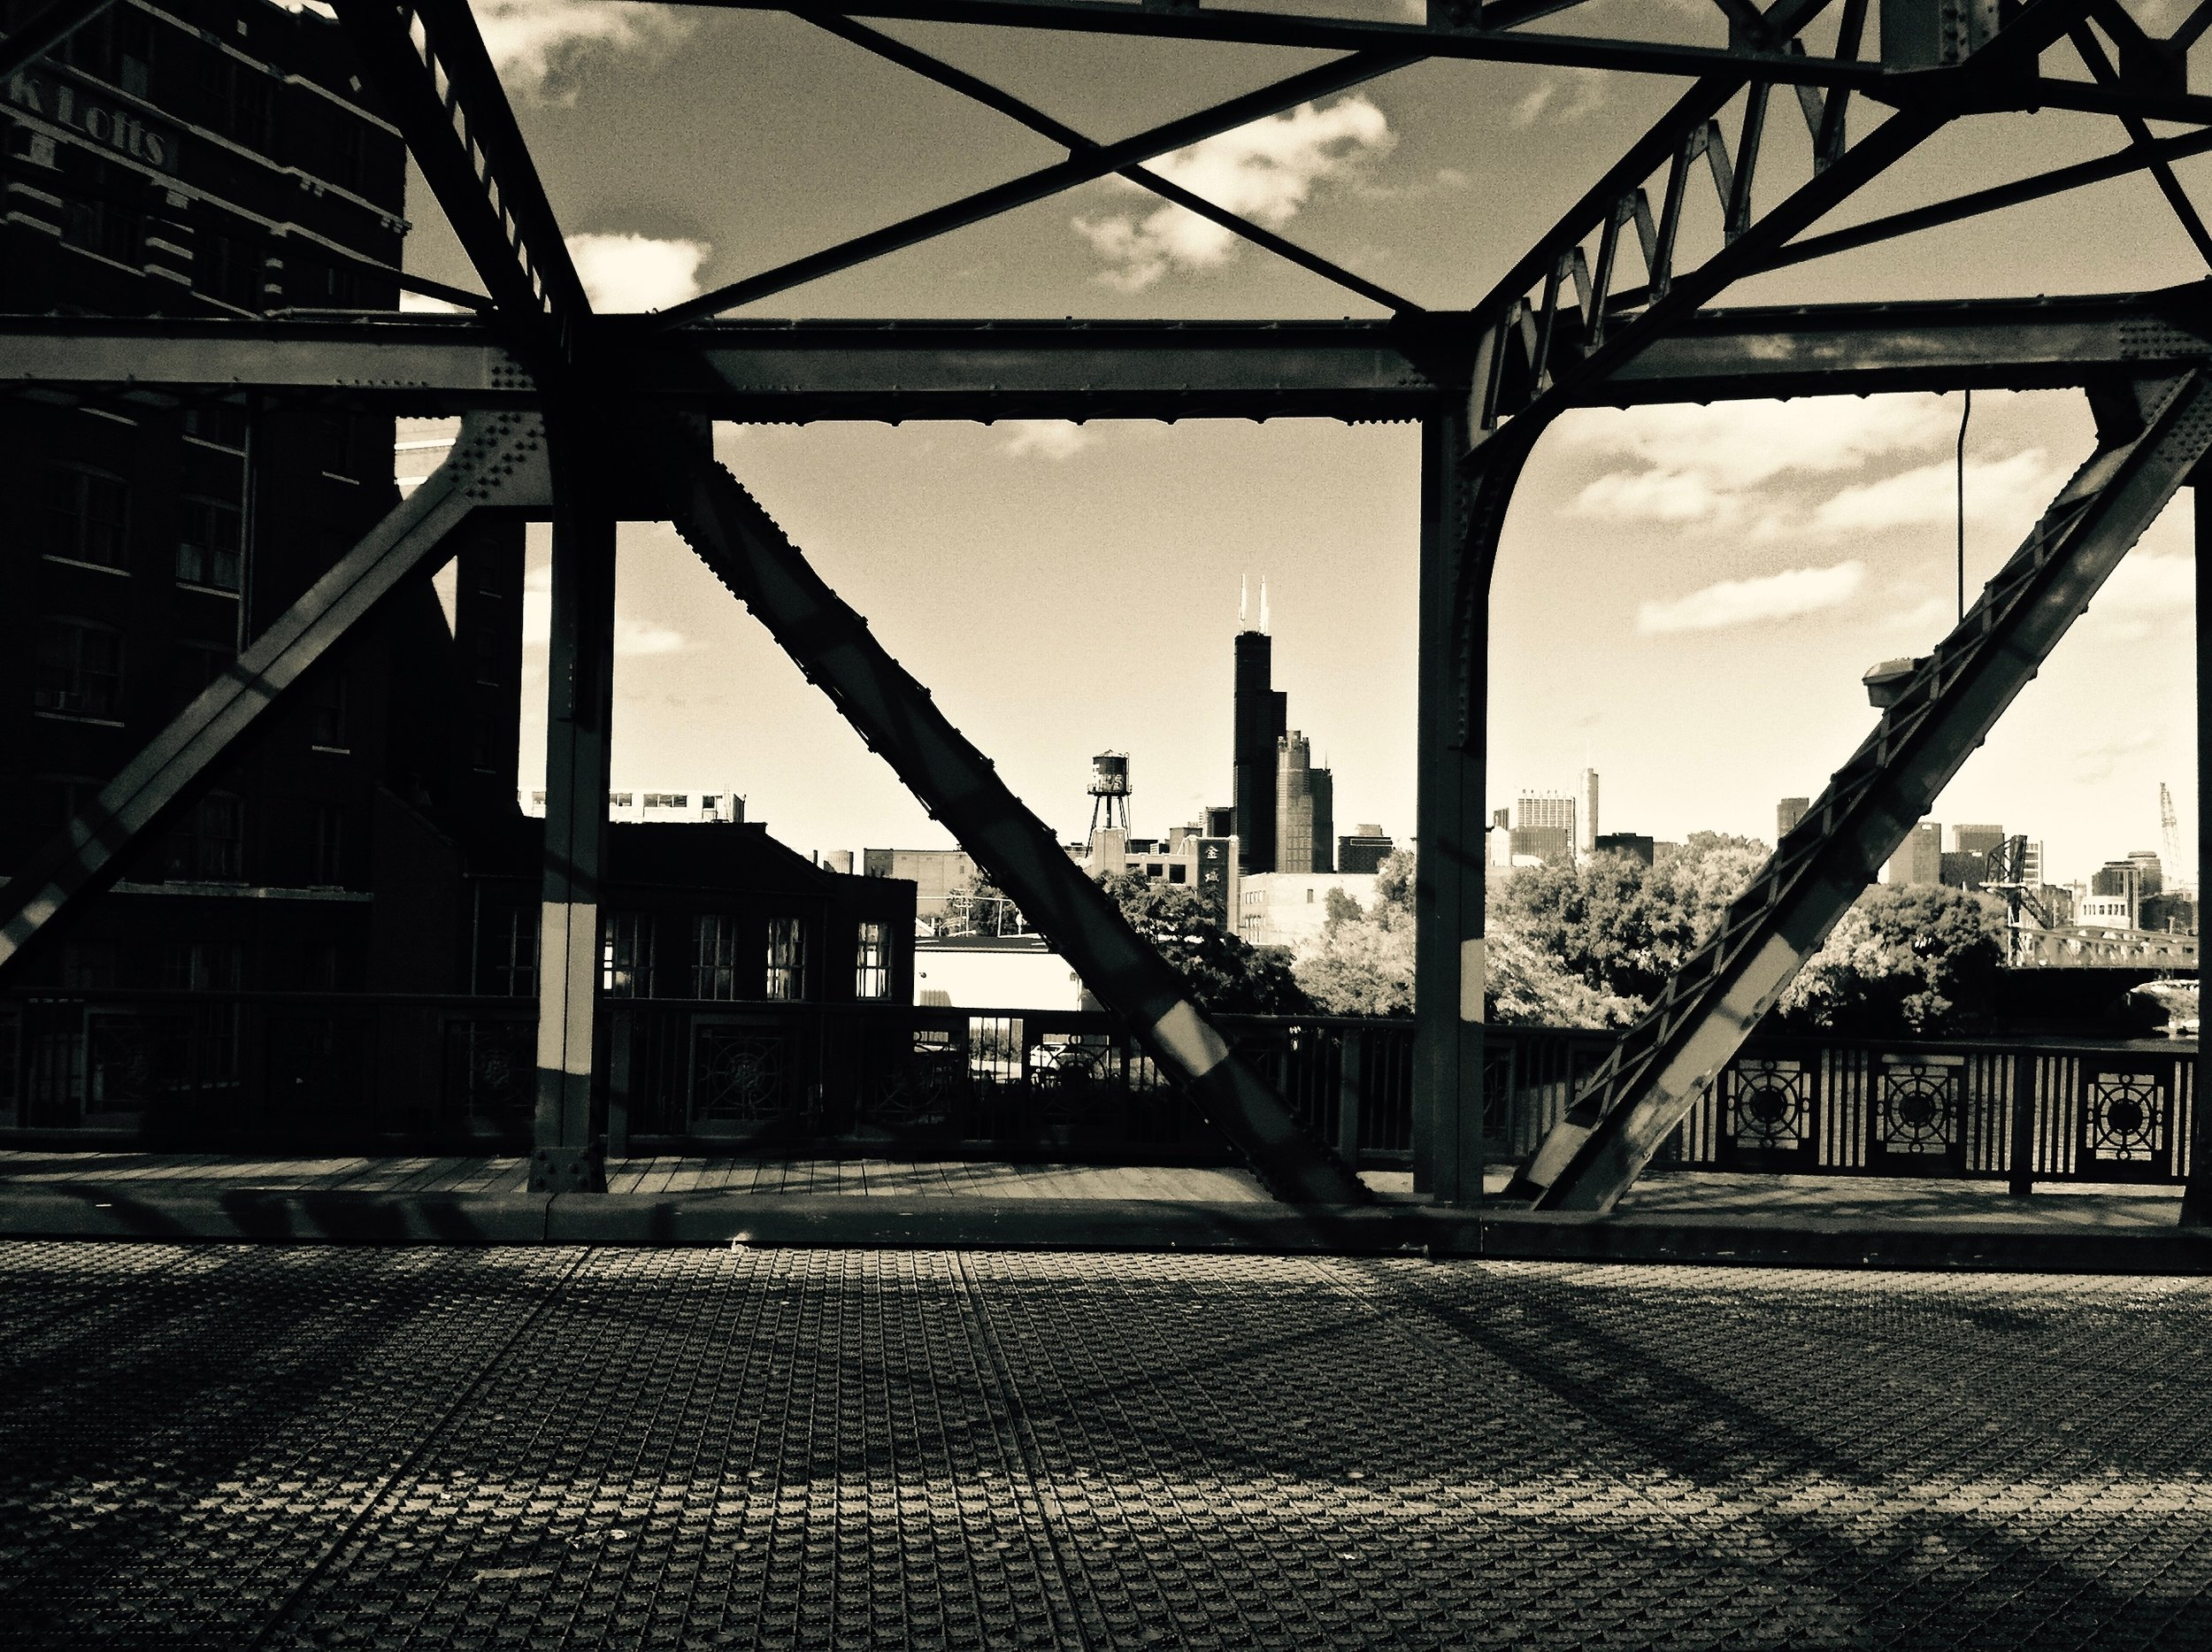 Cermak Road Bridge (Chicago), photograph, 2013